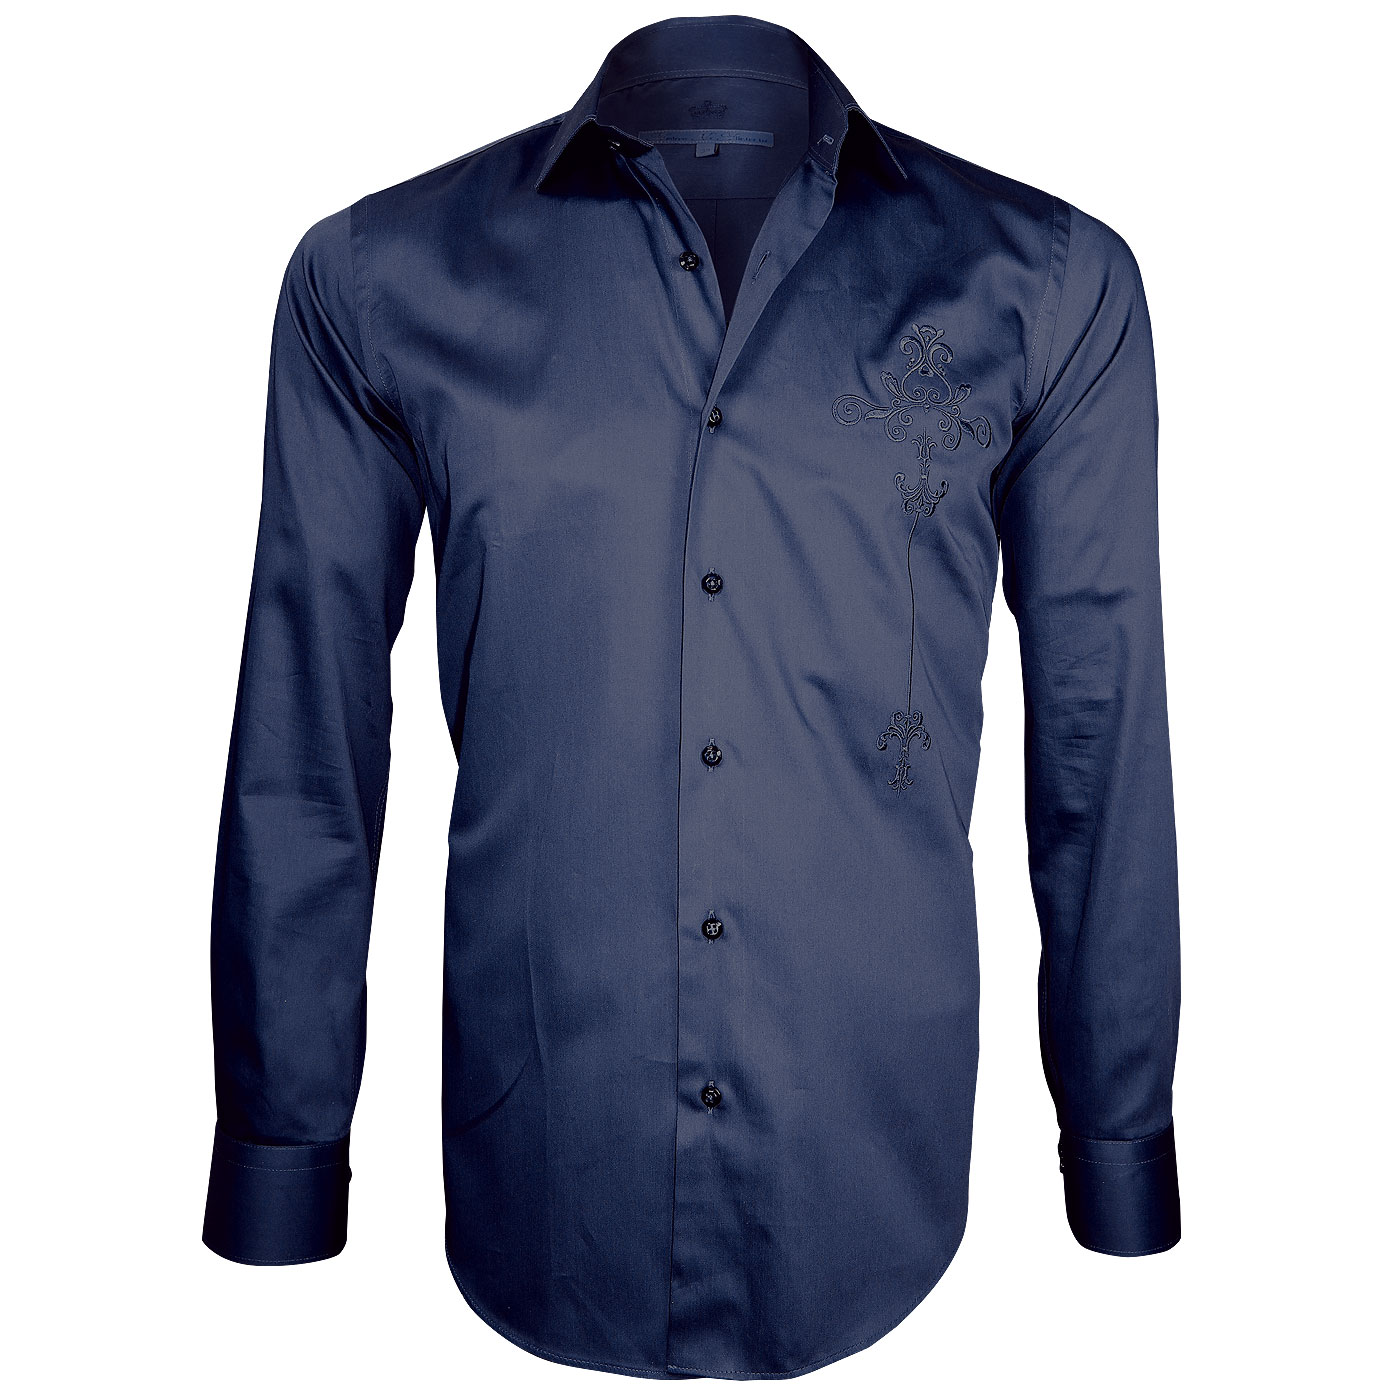 Choose shirt color among +600 models on Webmenshirt